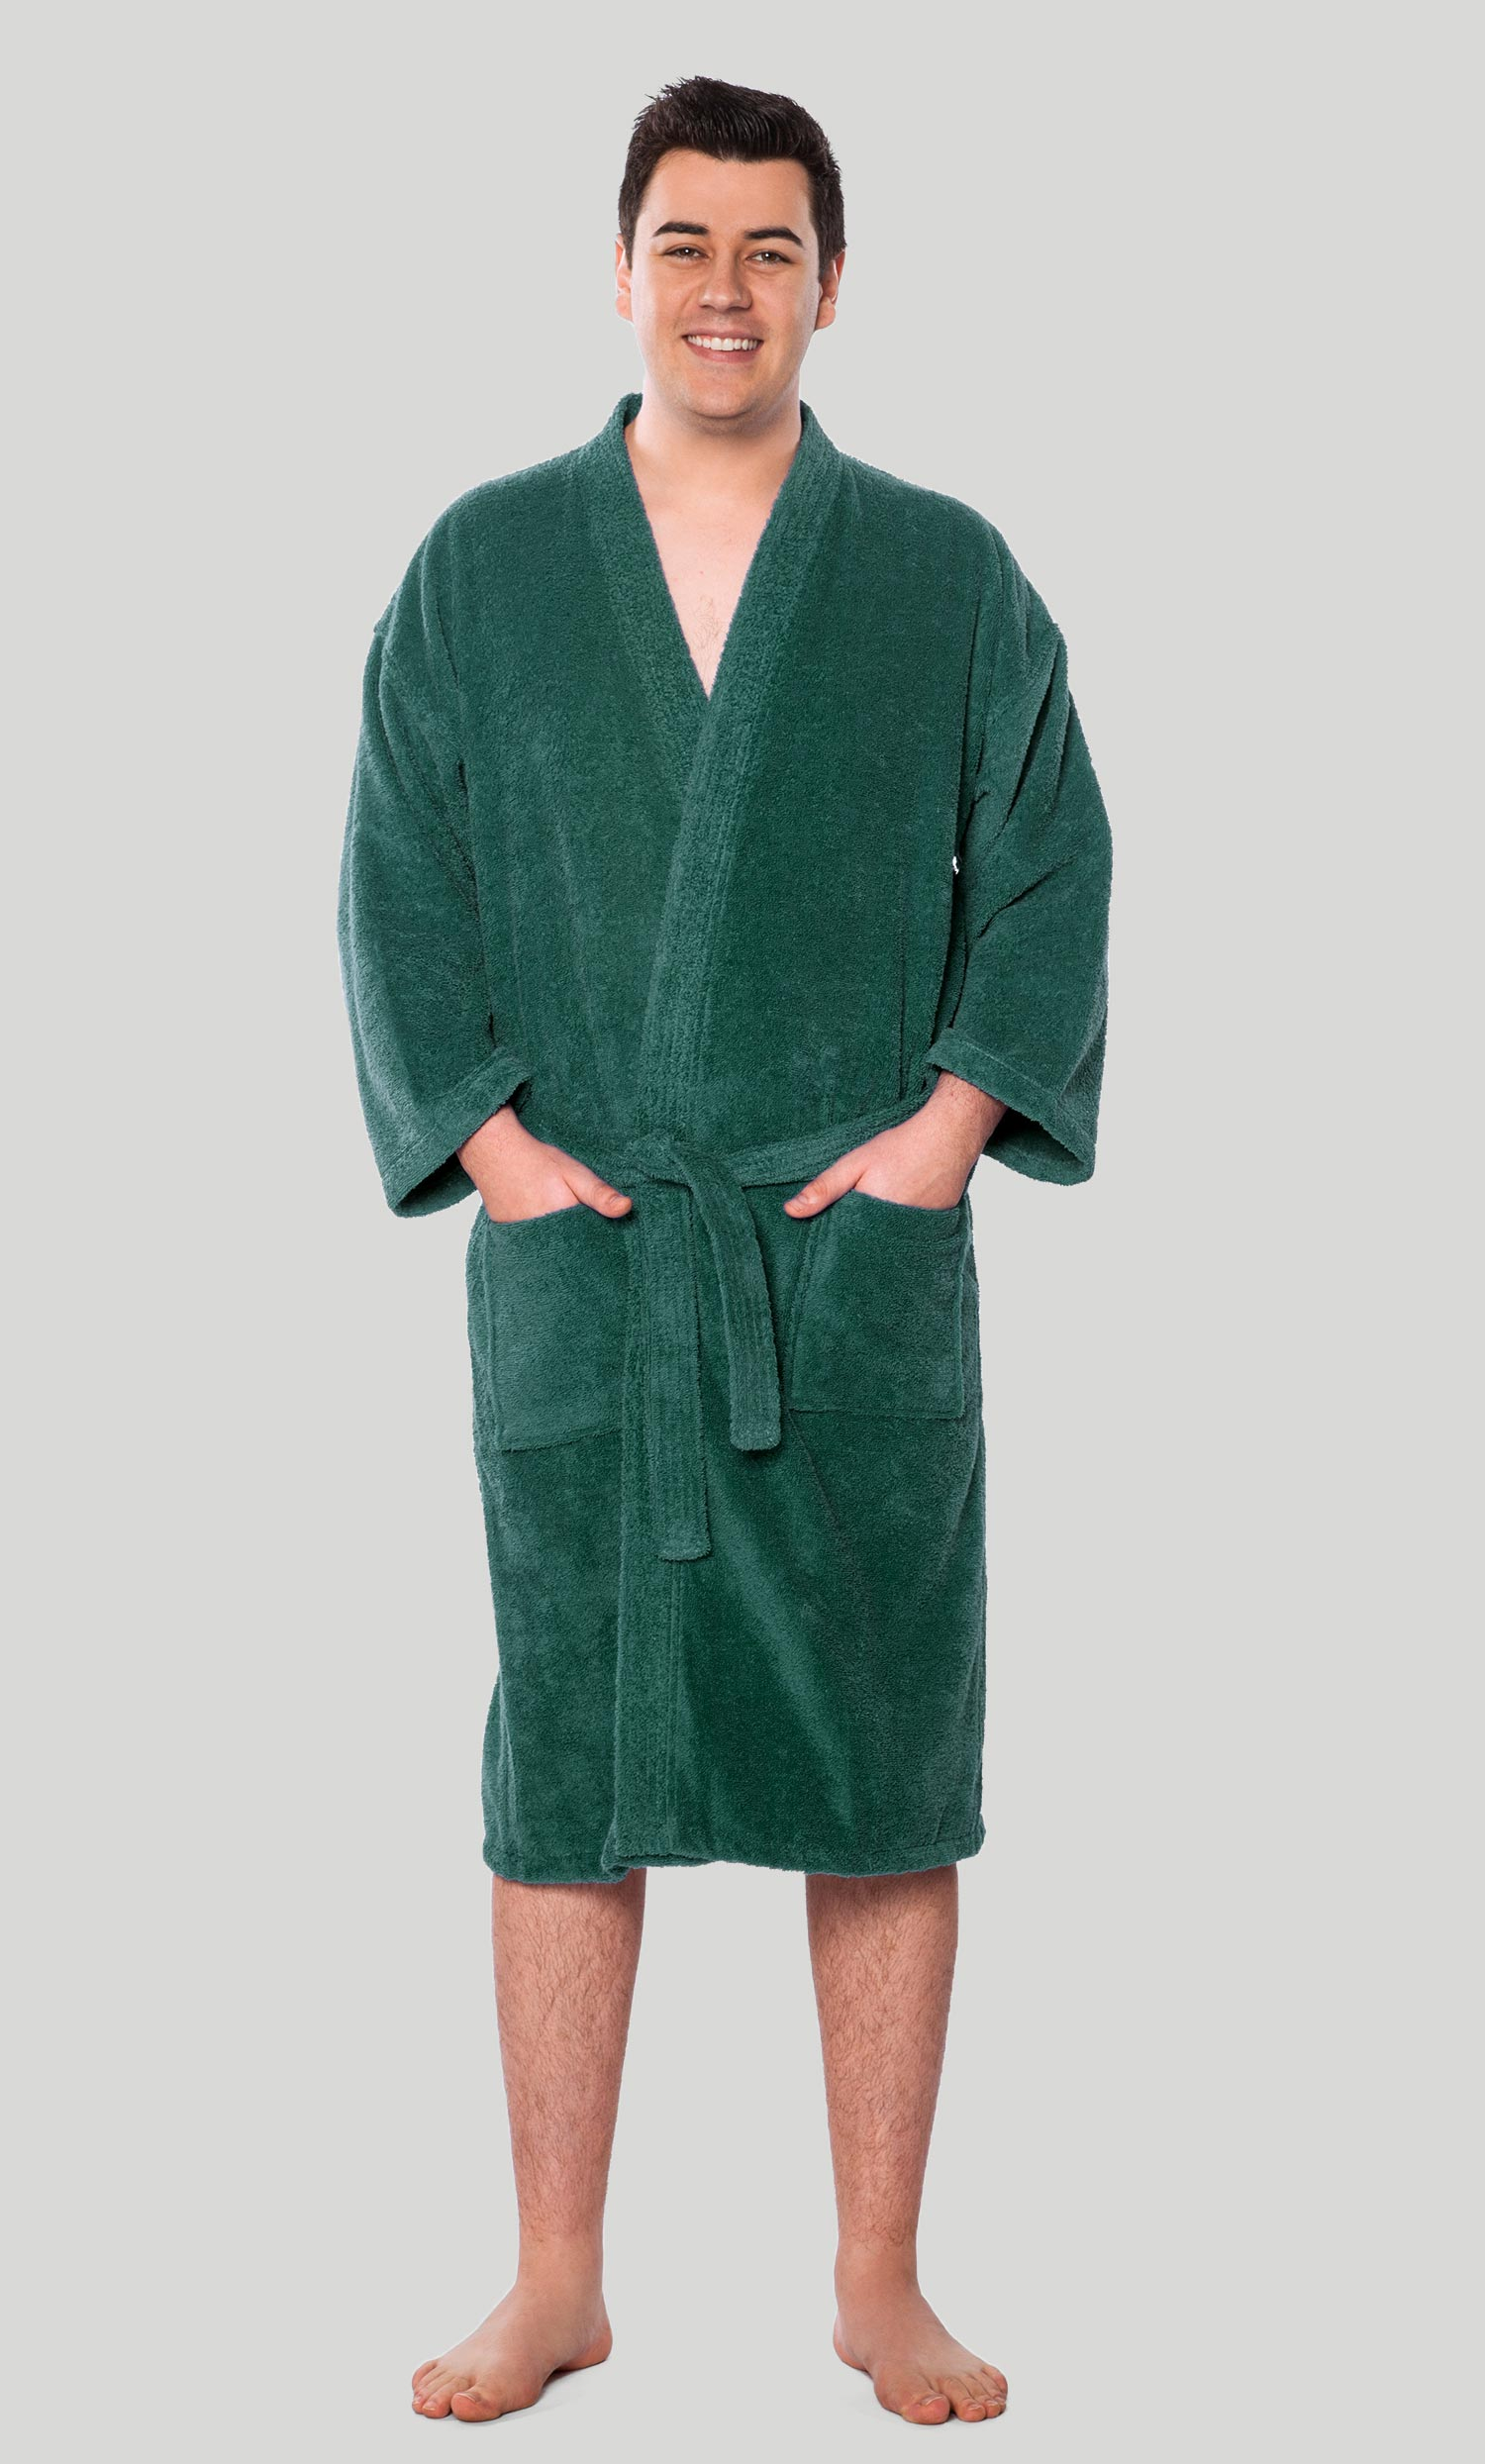 f65c2aa10b Economy Bathrobes    Terry Kimono Bathrobes    100% Turkish Cotton Forest  Green Terry Kimono Bathrobe - Wholesale bathrobes